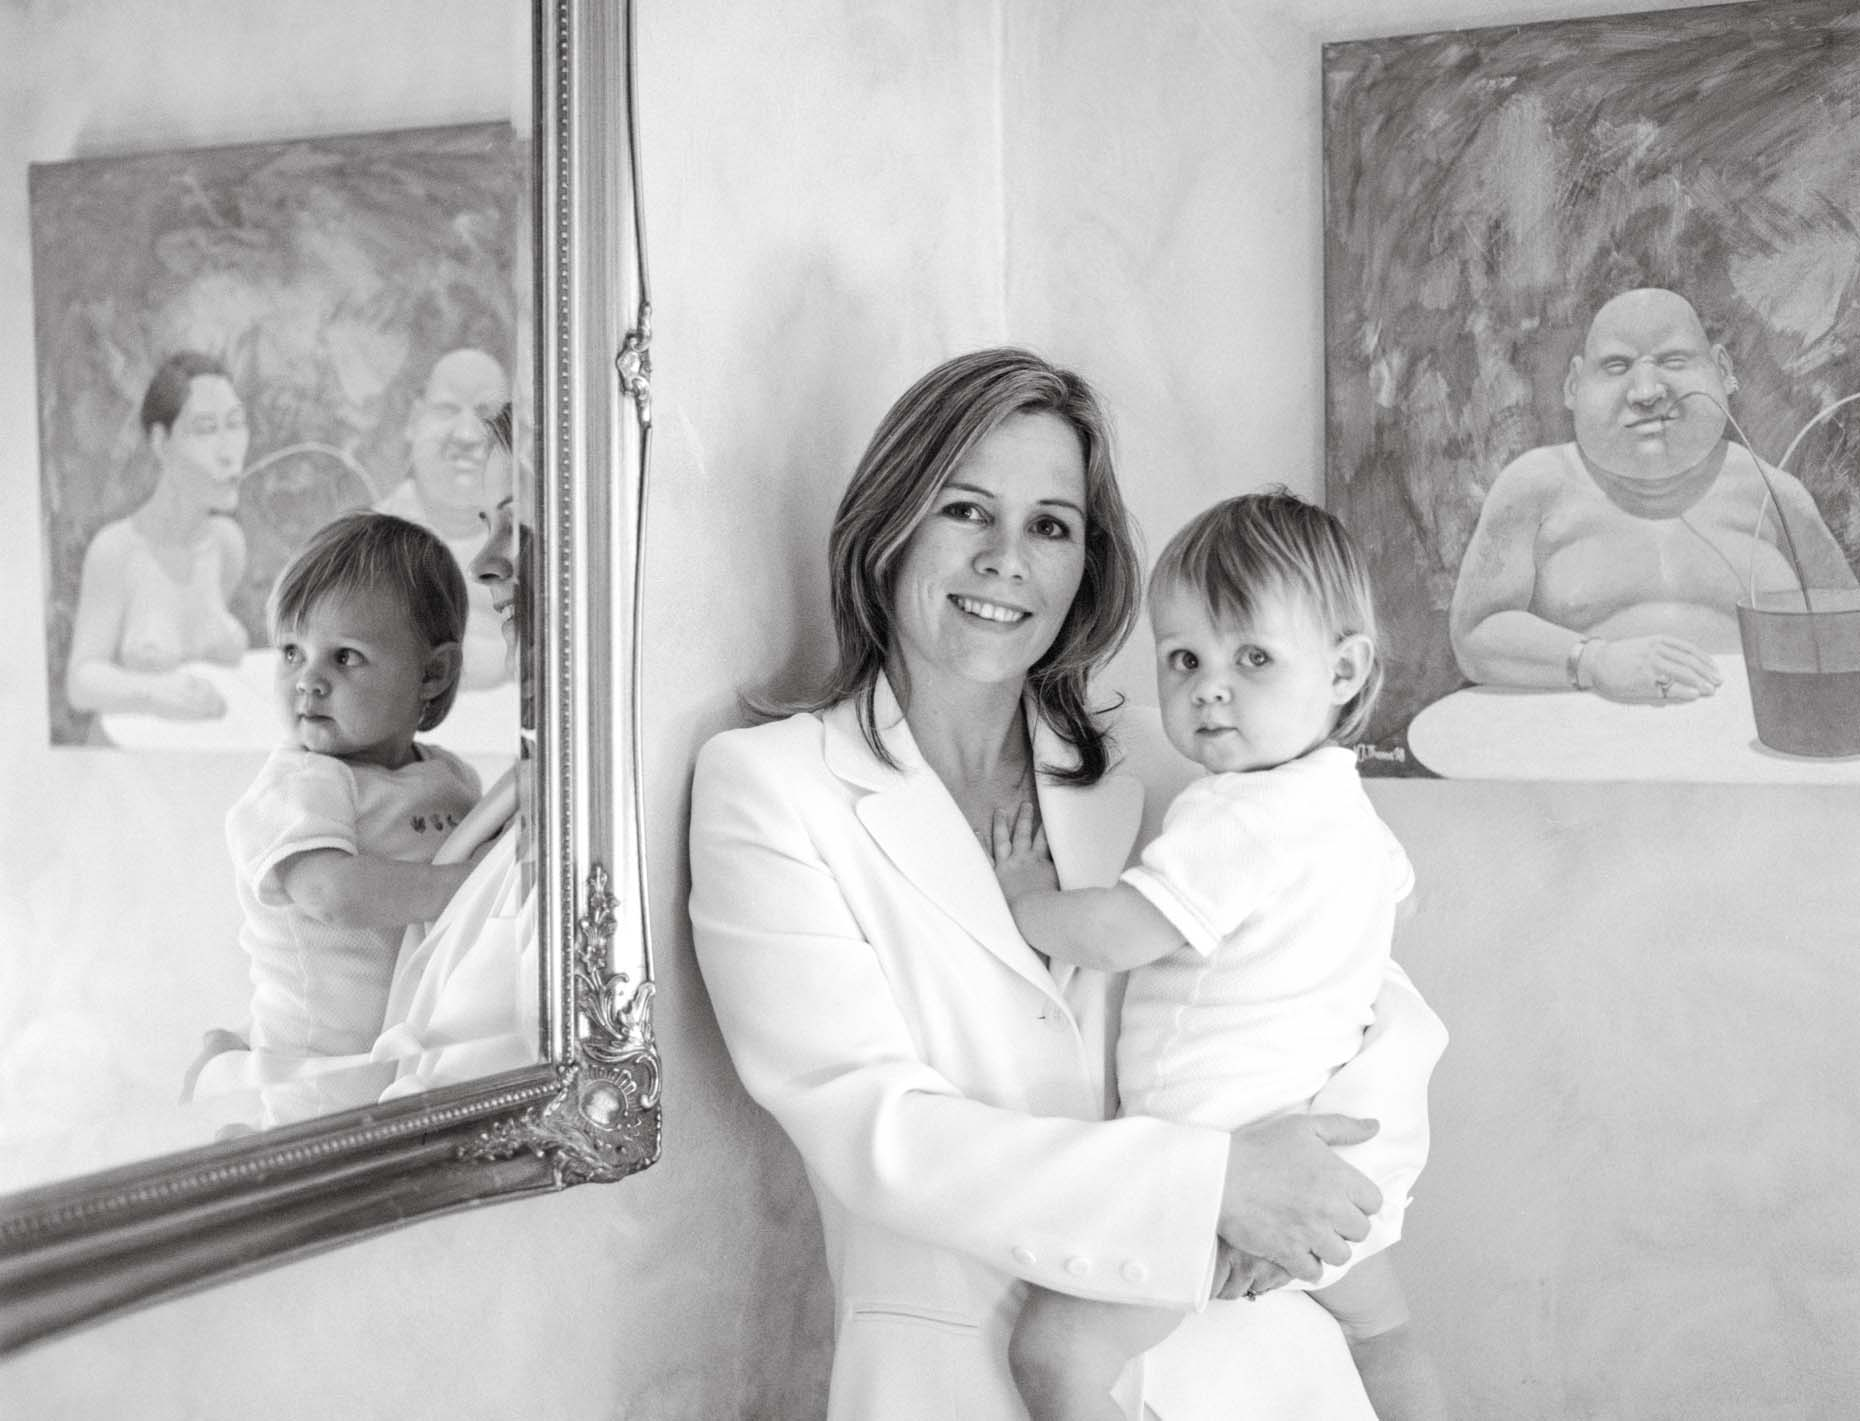 JACKIE AND ELENA Black & White, Daylight, femail, Girls, House, lifestlye, Location, Mirror, Mother and Baby, Portrait Photographer, Reflection, Room, White Suit, Woman